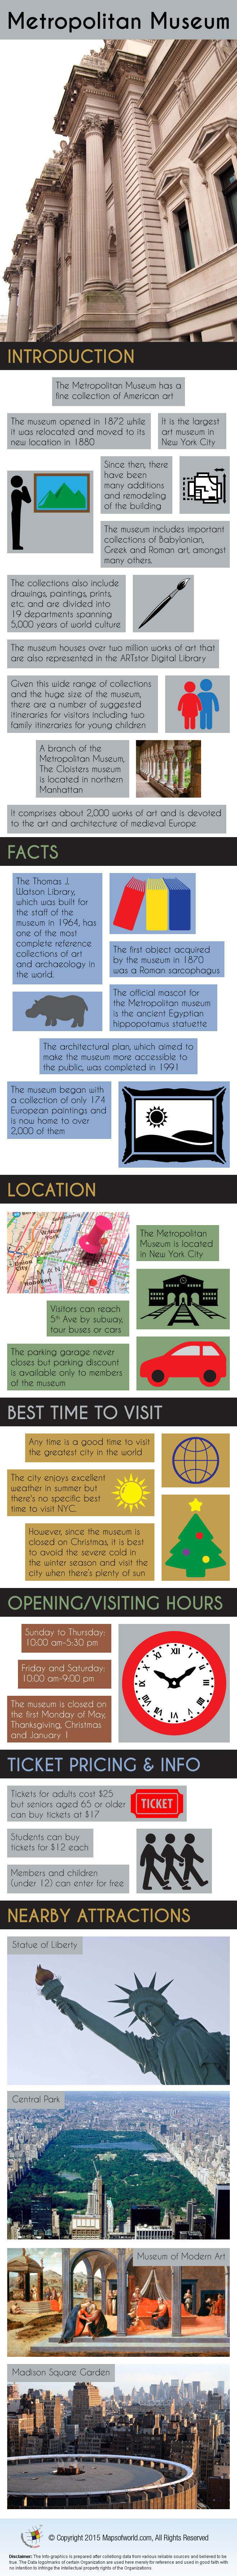 Metropolitan Museum of Art - Facts & Infographic